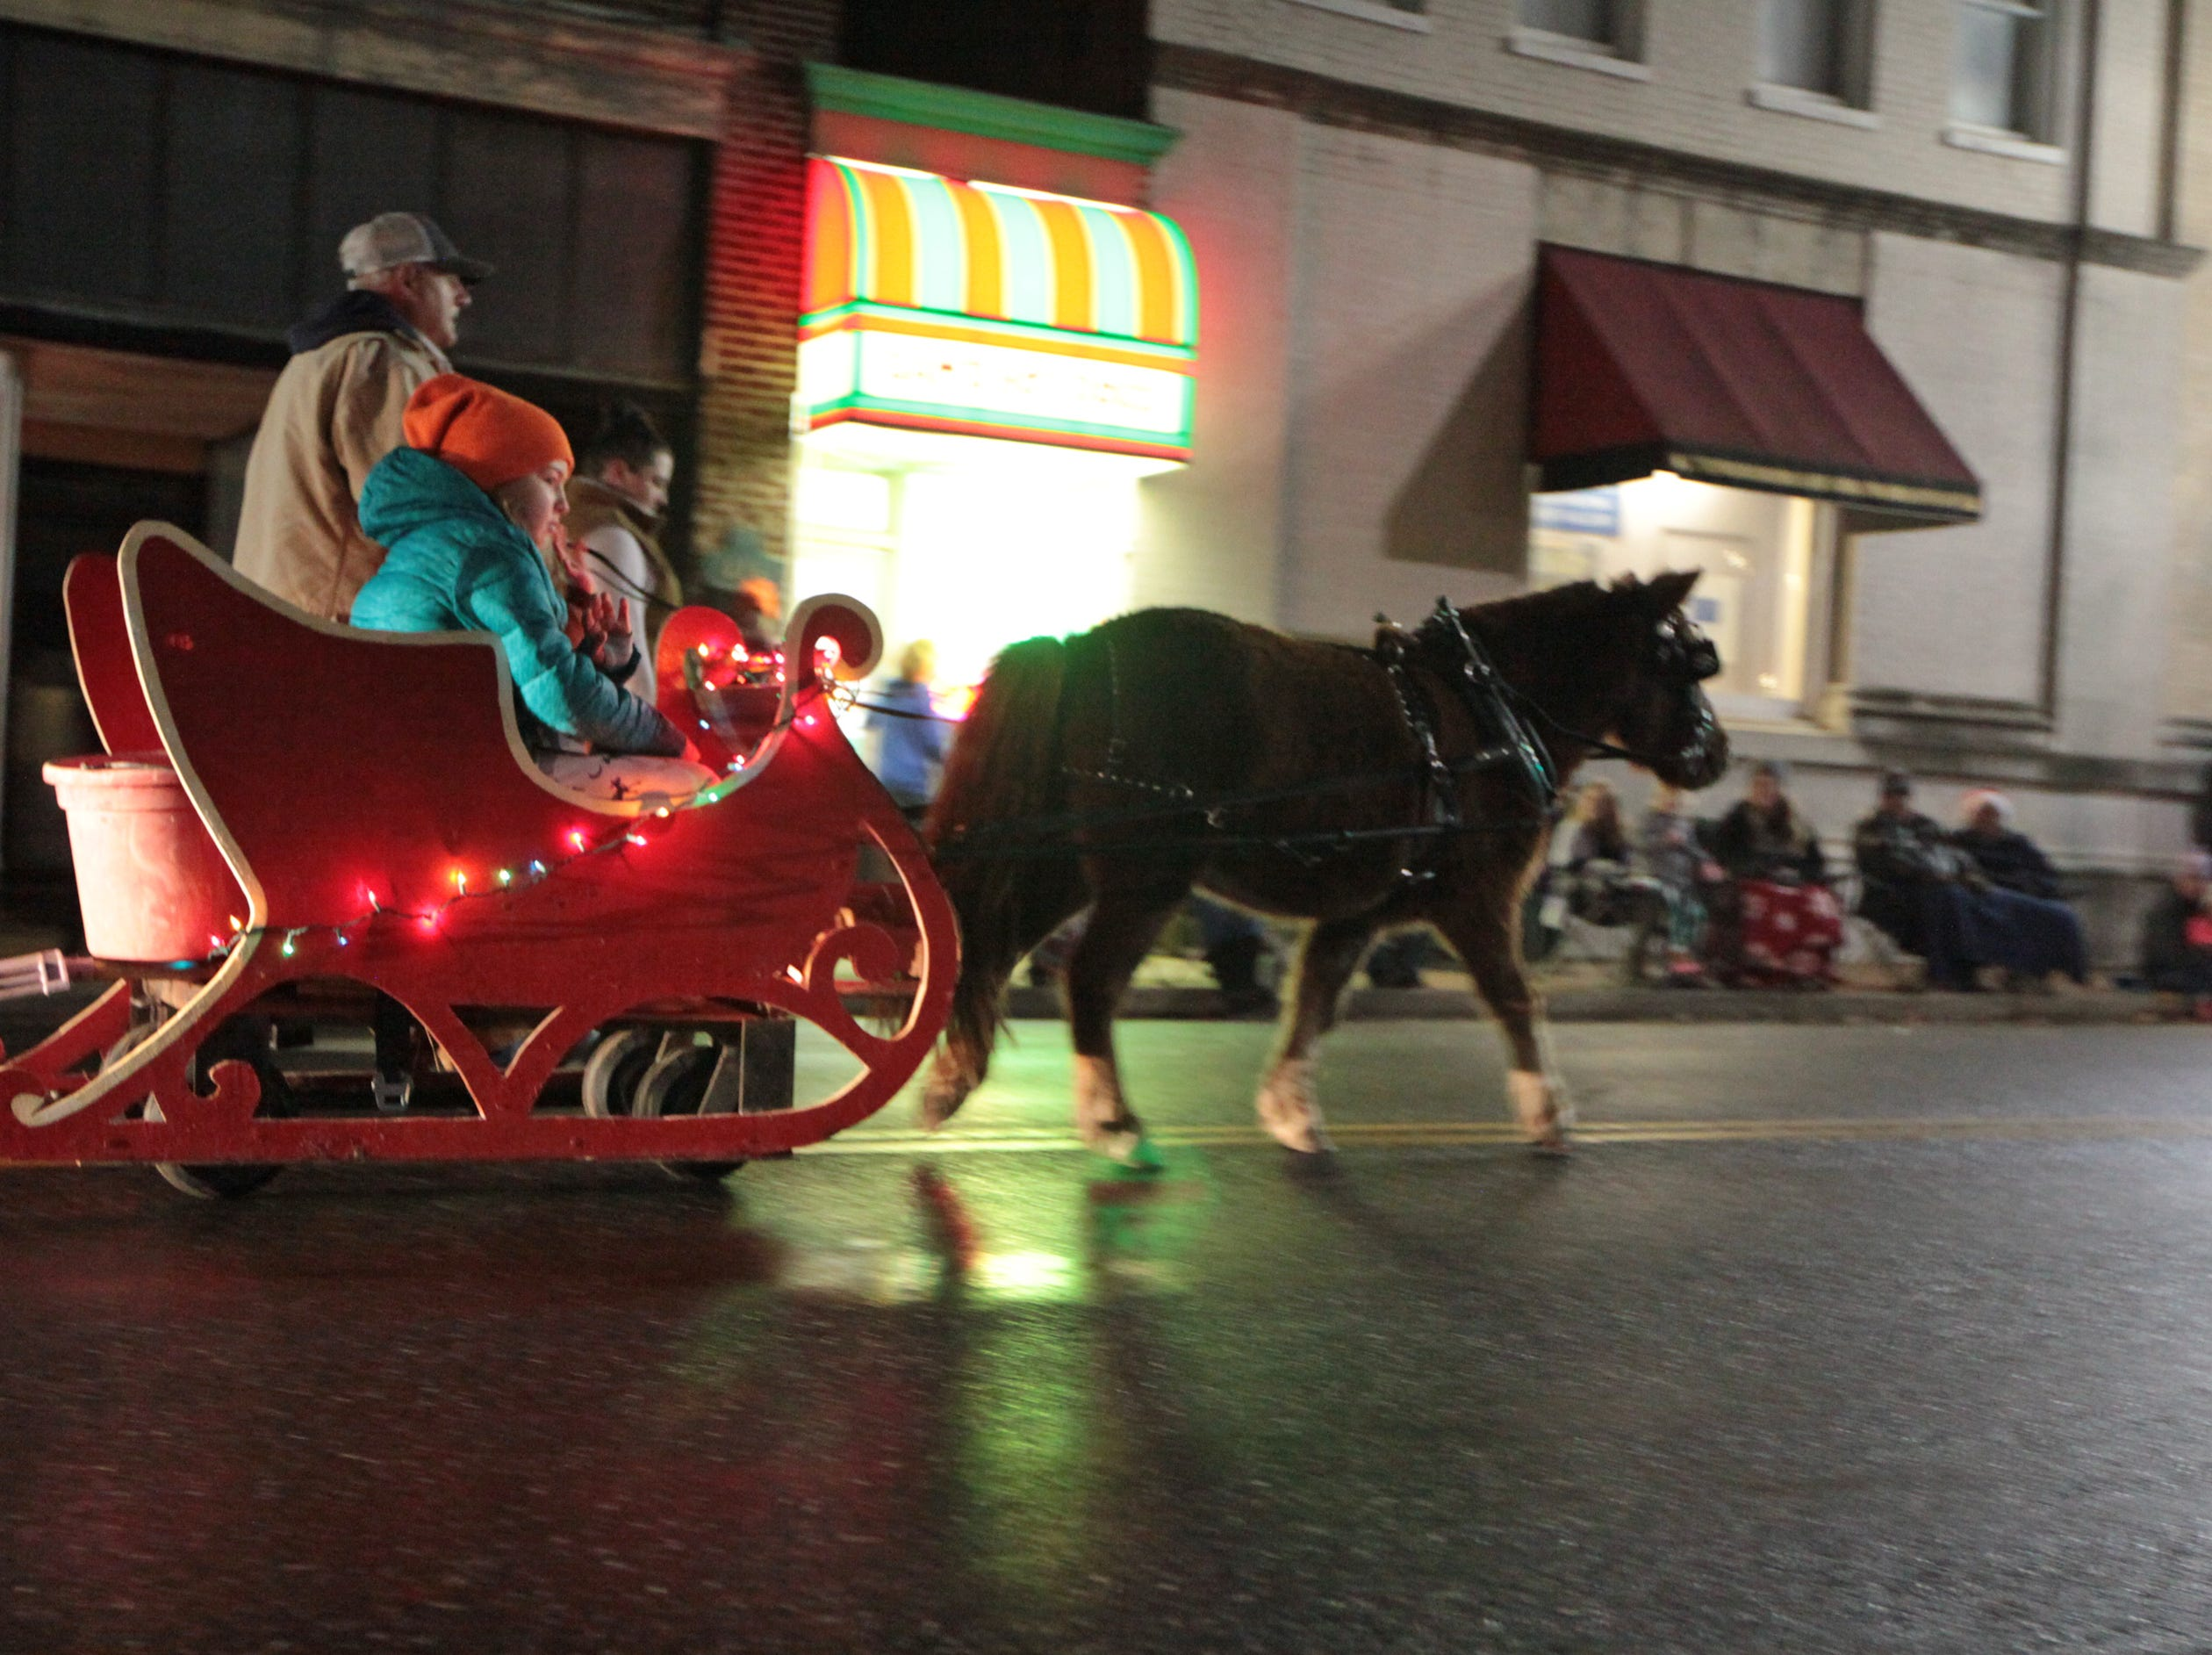 Participants in the annual Waynesboro Christmas parade travel up W. Main Street on Saturday, Dec. 1, 2018 tossing candy to patrons watching that evening.